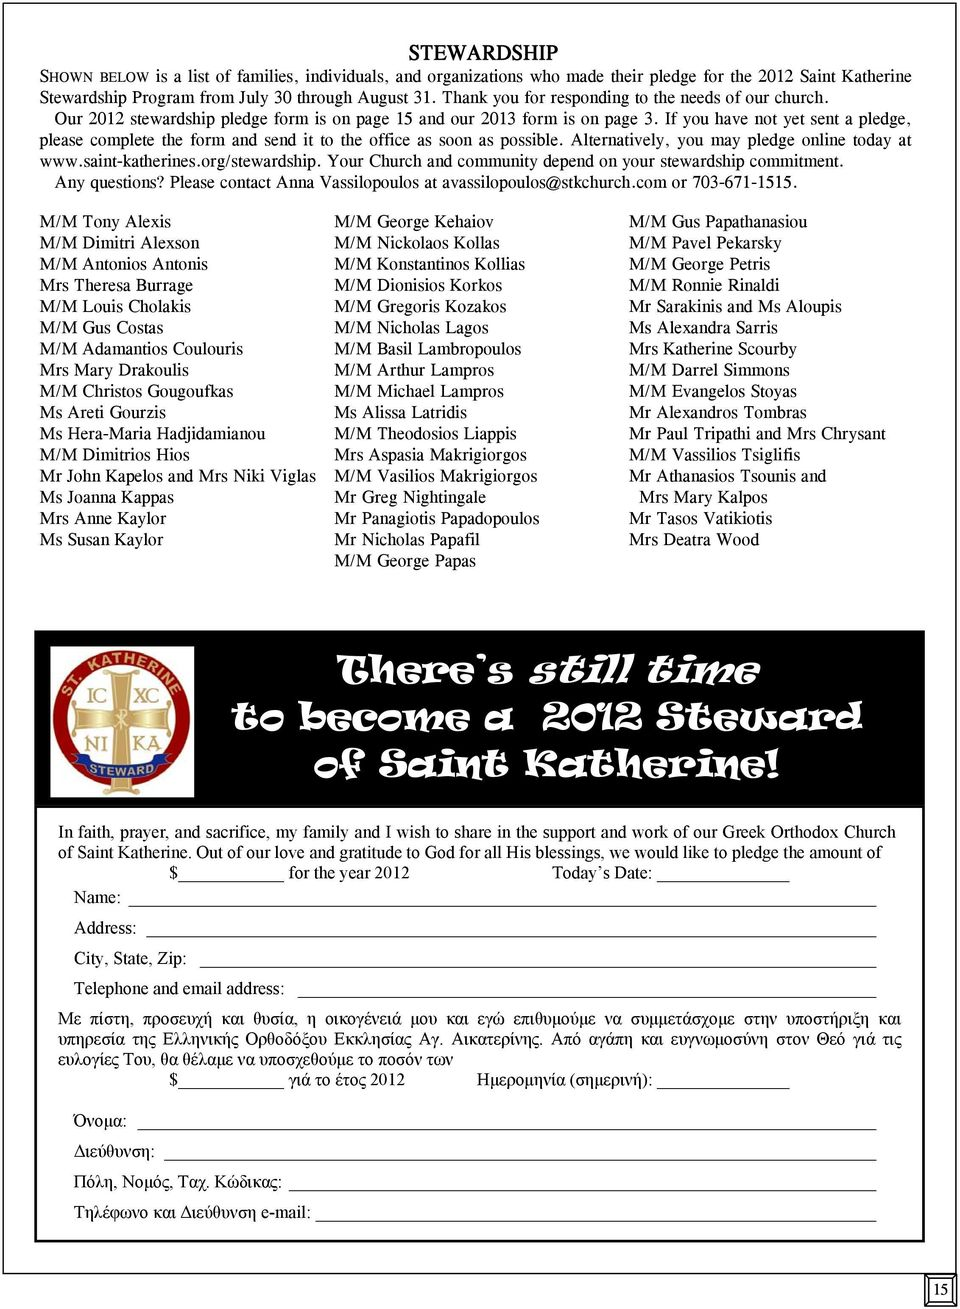 If you have not yet sent a pledge, please complete the form and send it to the office as soon as possible. Alternatively, you may pledge online today at www.saint-katherines.org/stewardship.